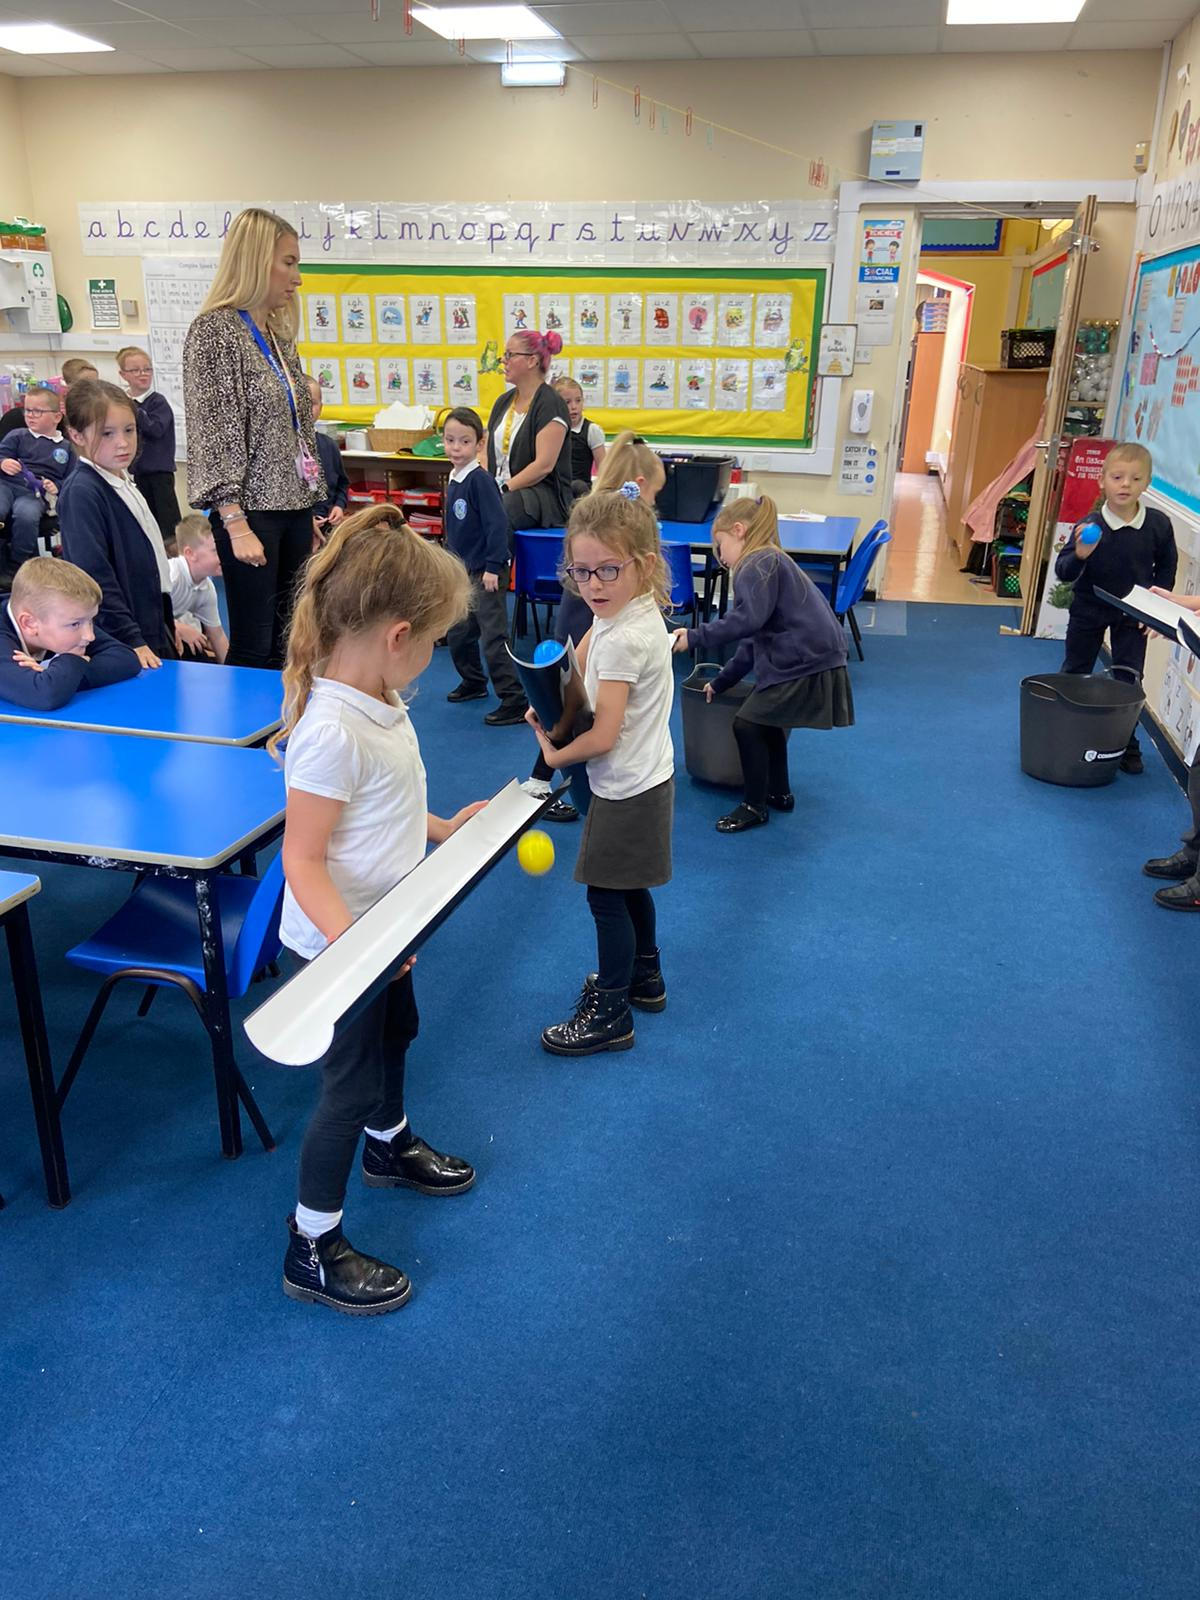 Year 2's CoJo mission